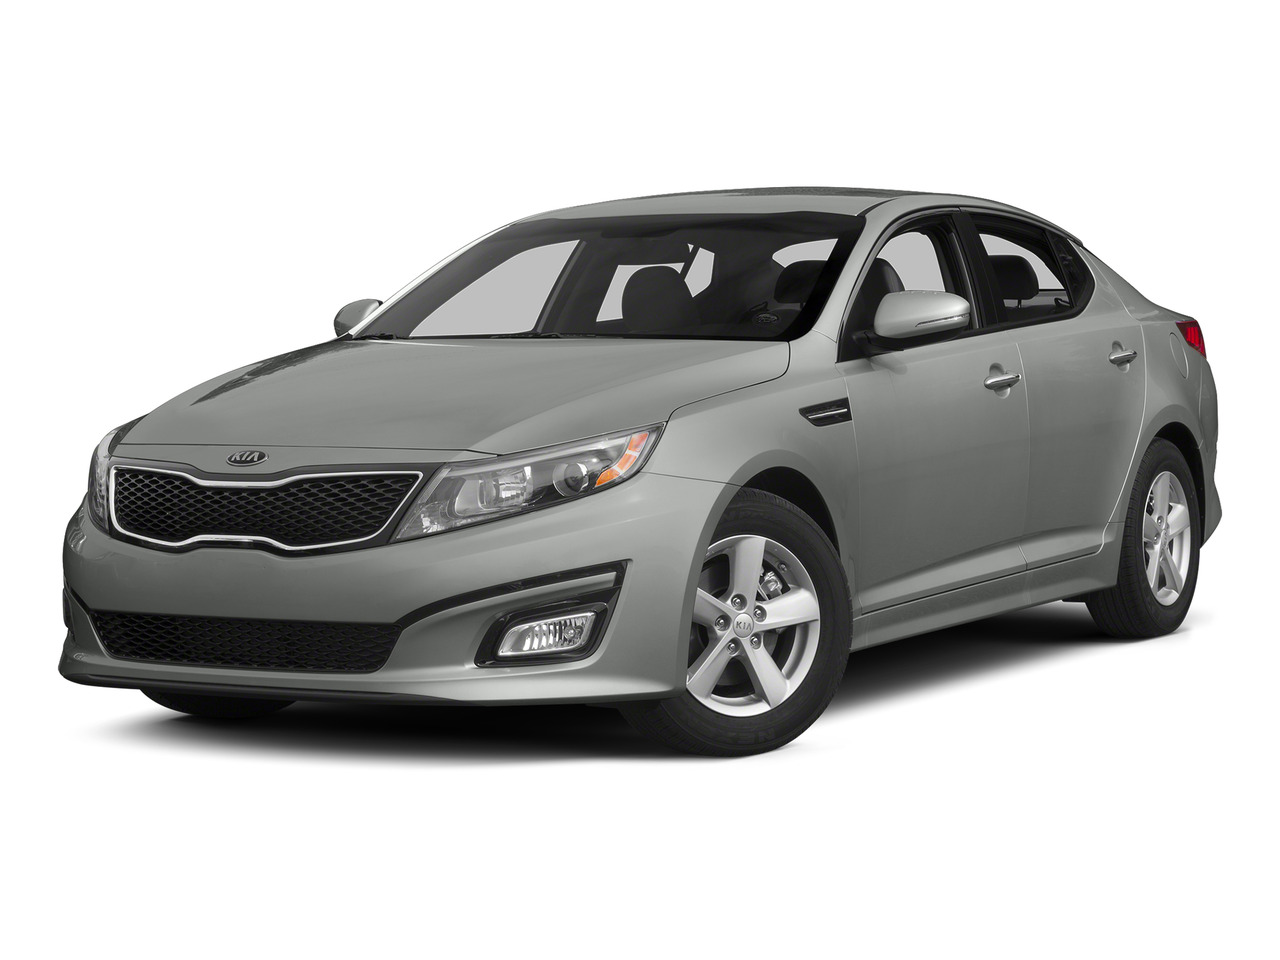 Titanium Gray 2015 Kia Optima EX 4dr Car Raleigh NC